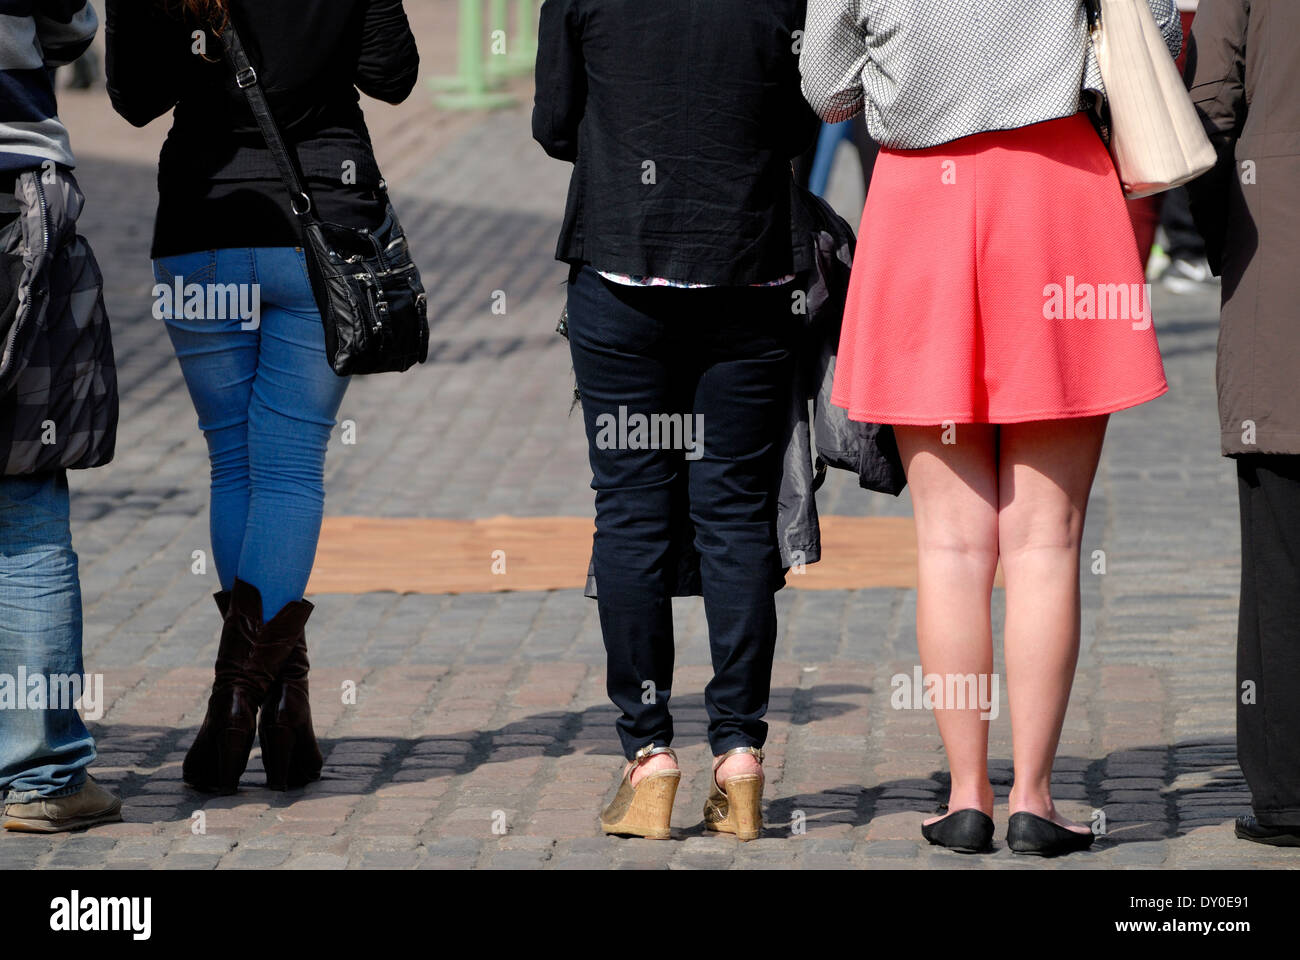 London, England, UK. Women's legs - contrasting in trousers and skirt - Stock Image